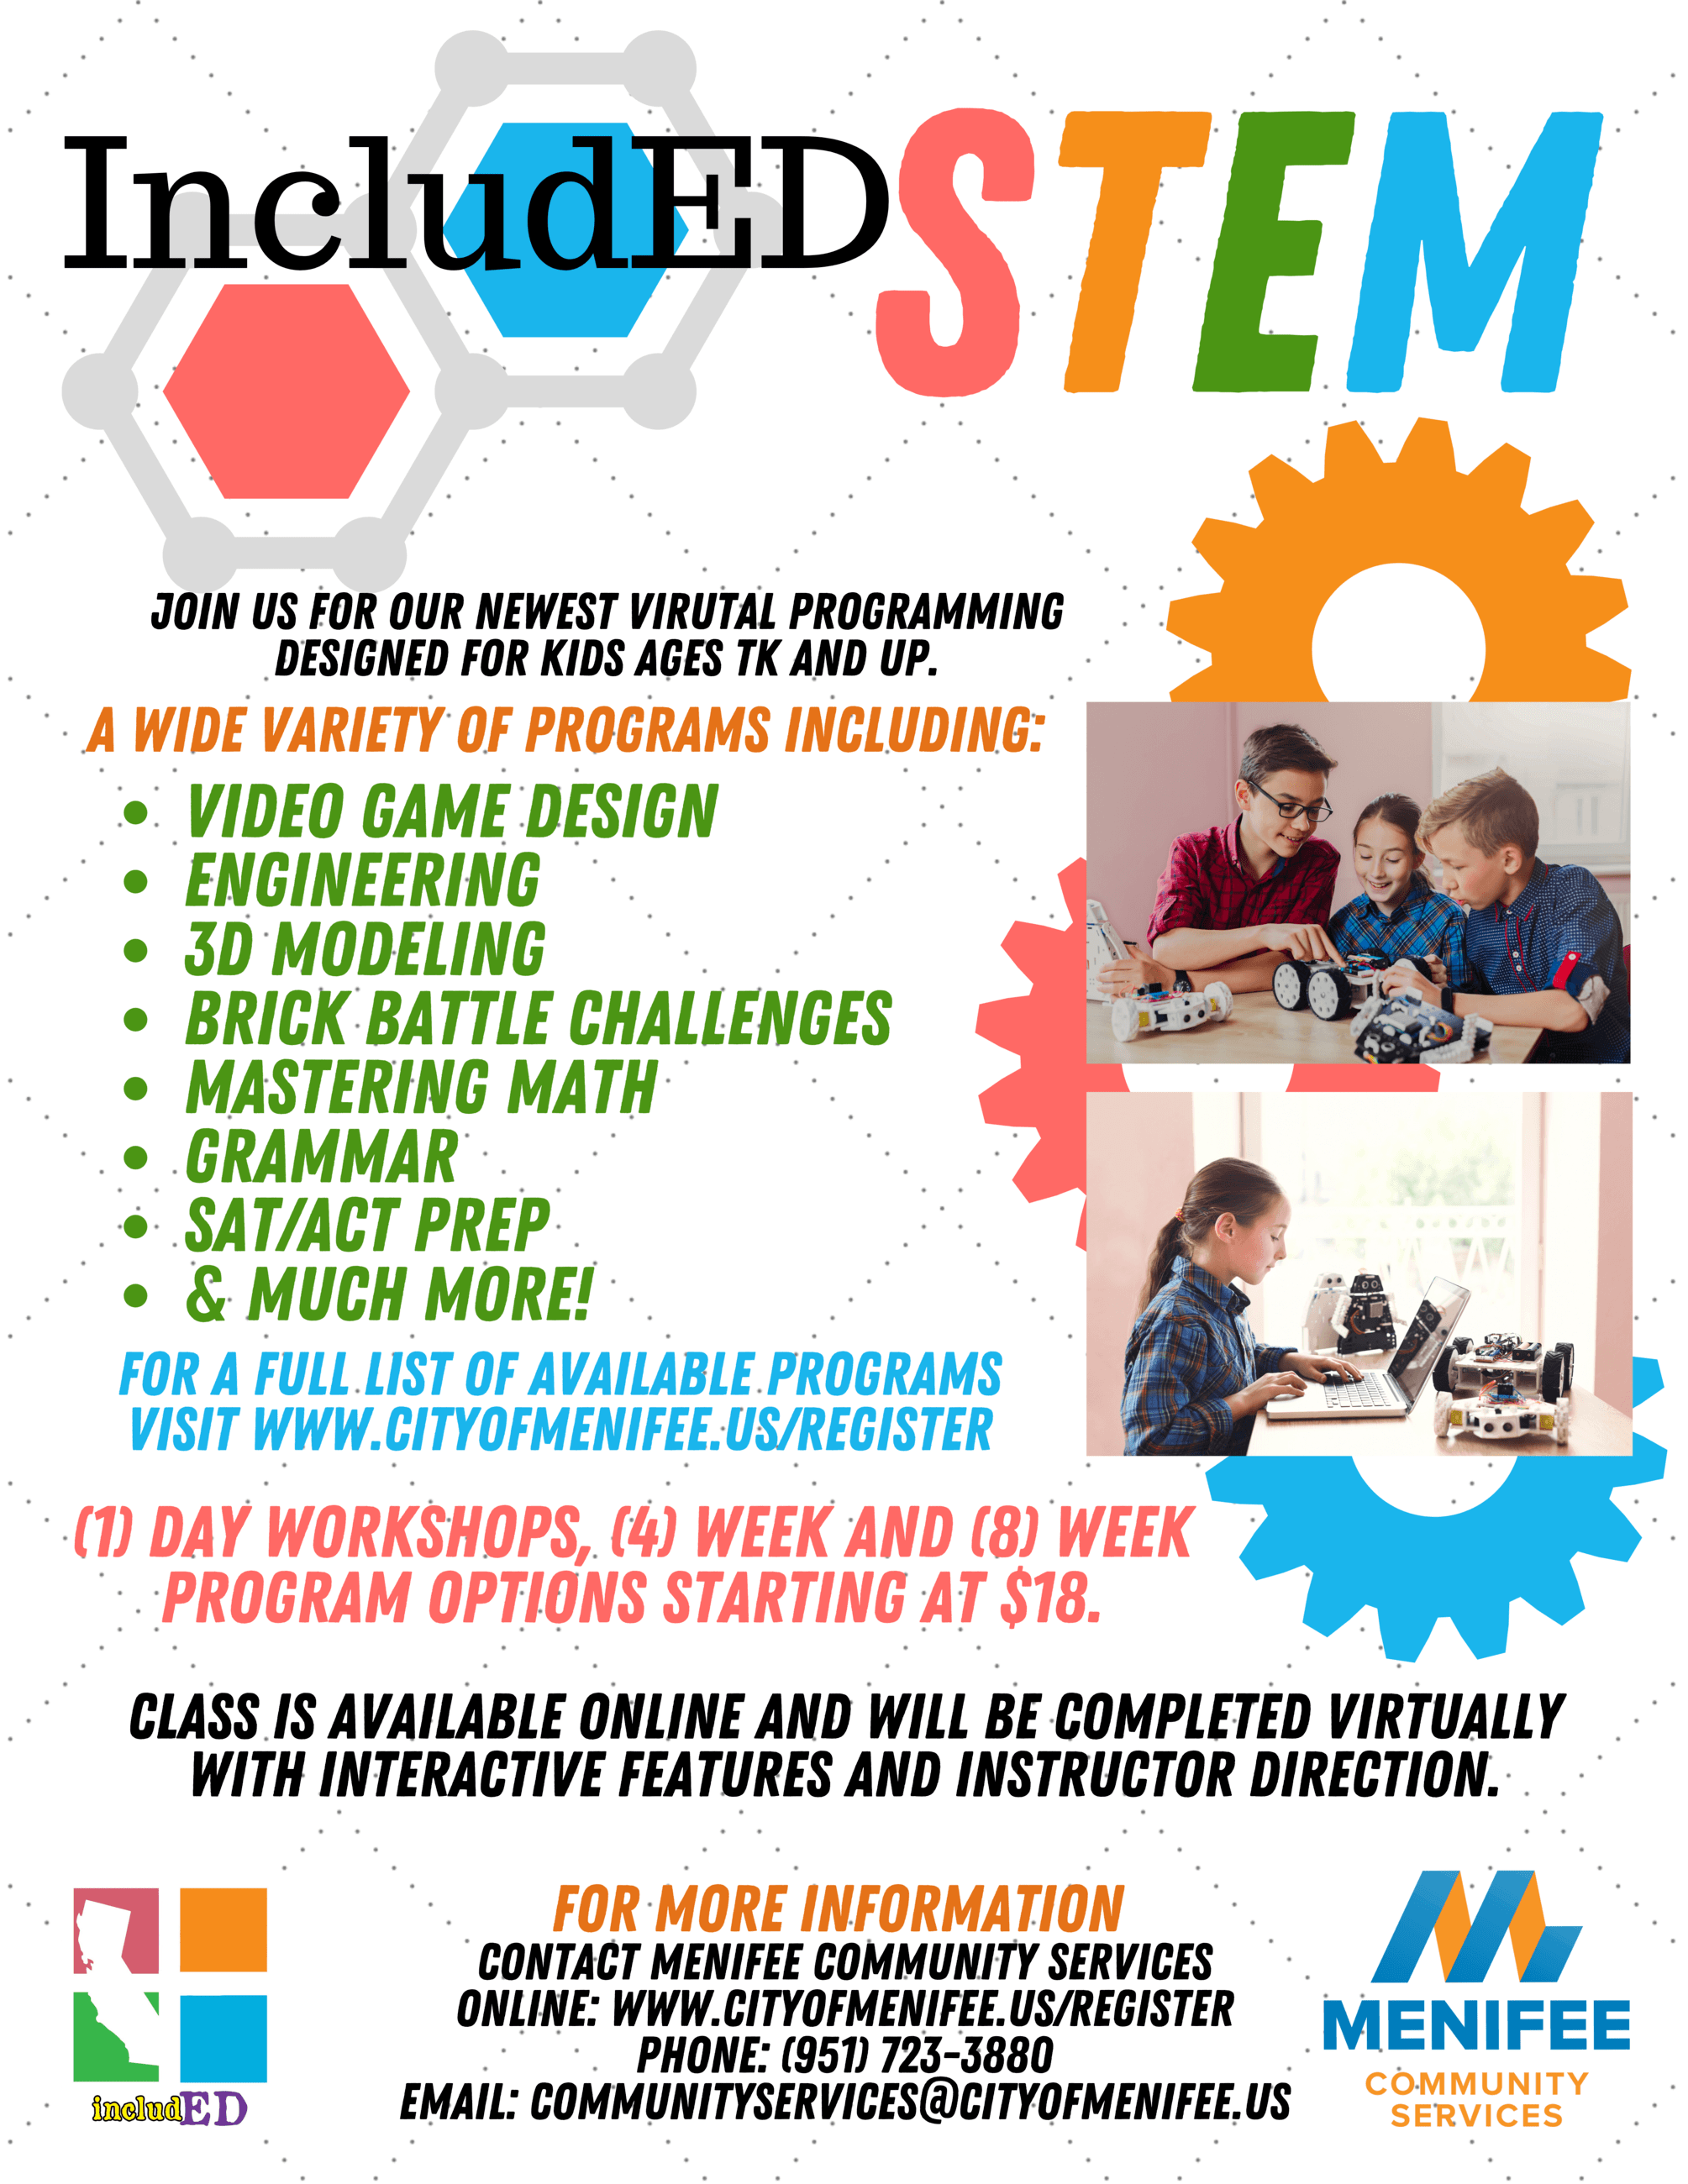 IncludED STEM Program Flyer: Join us for our newest virtual programming designed for Ages TK and Up.